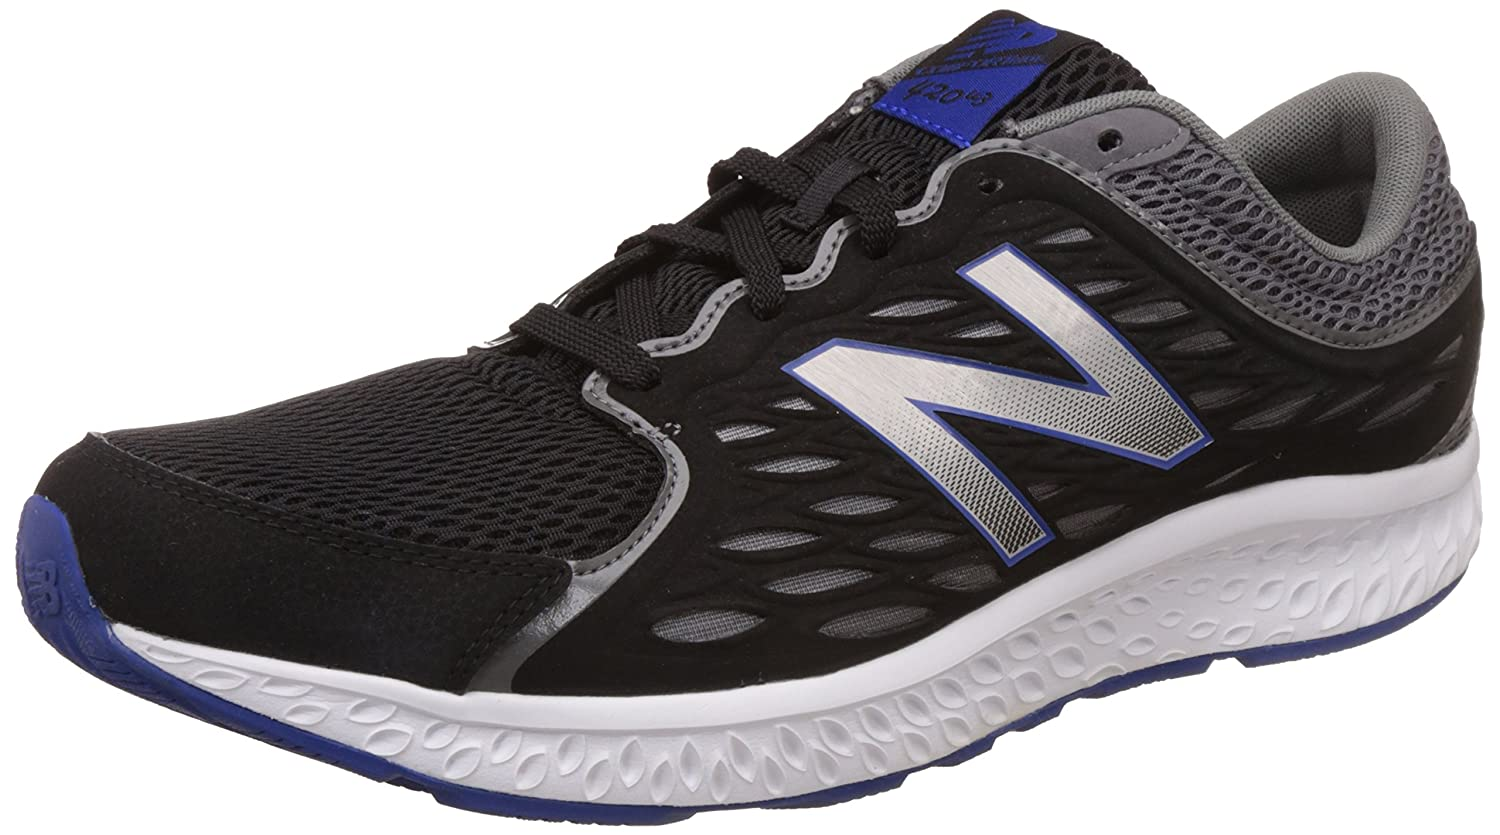 TALLA 40.5 EU. New Balance 420, Zapatillas para Hombre, Negro (Black/Grey), 40.5 EU (7 UK)